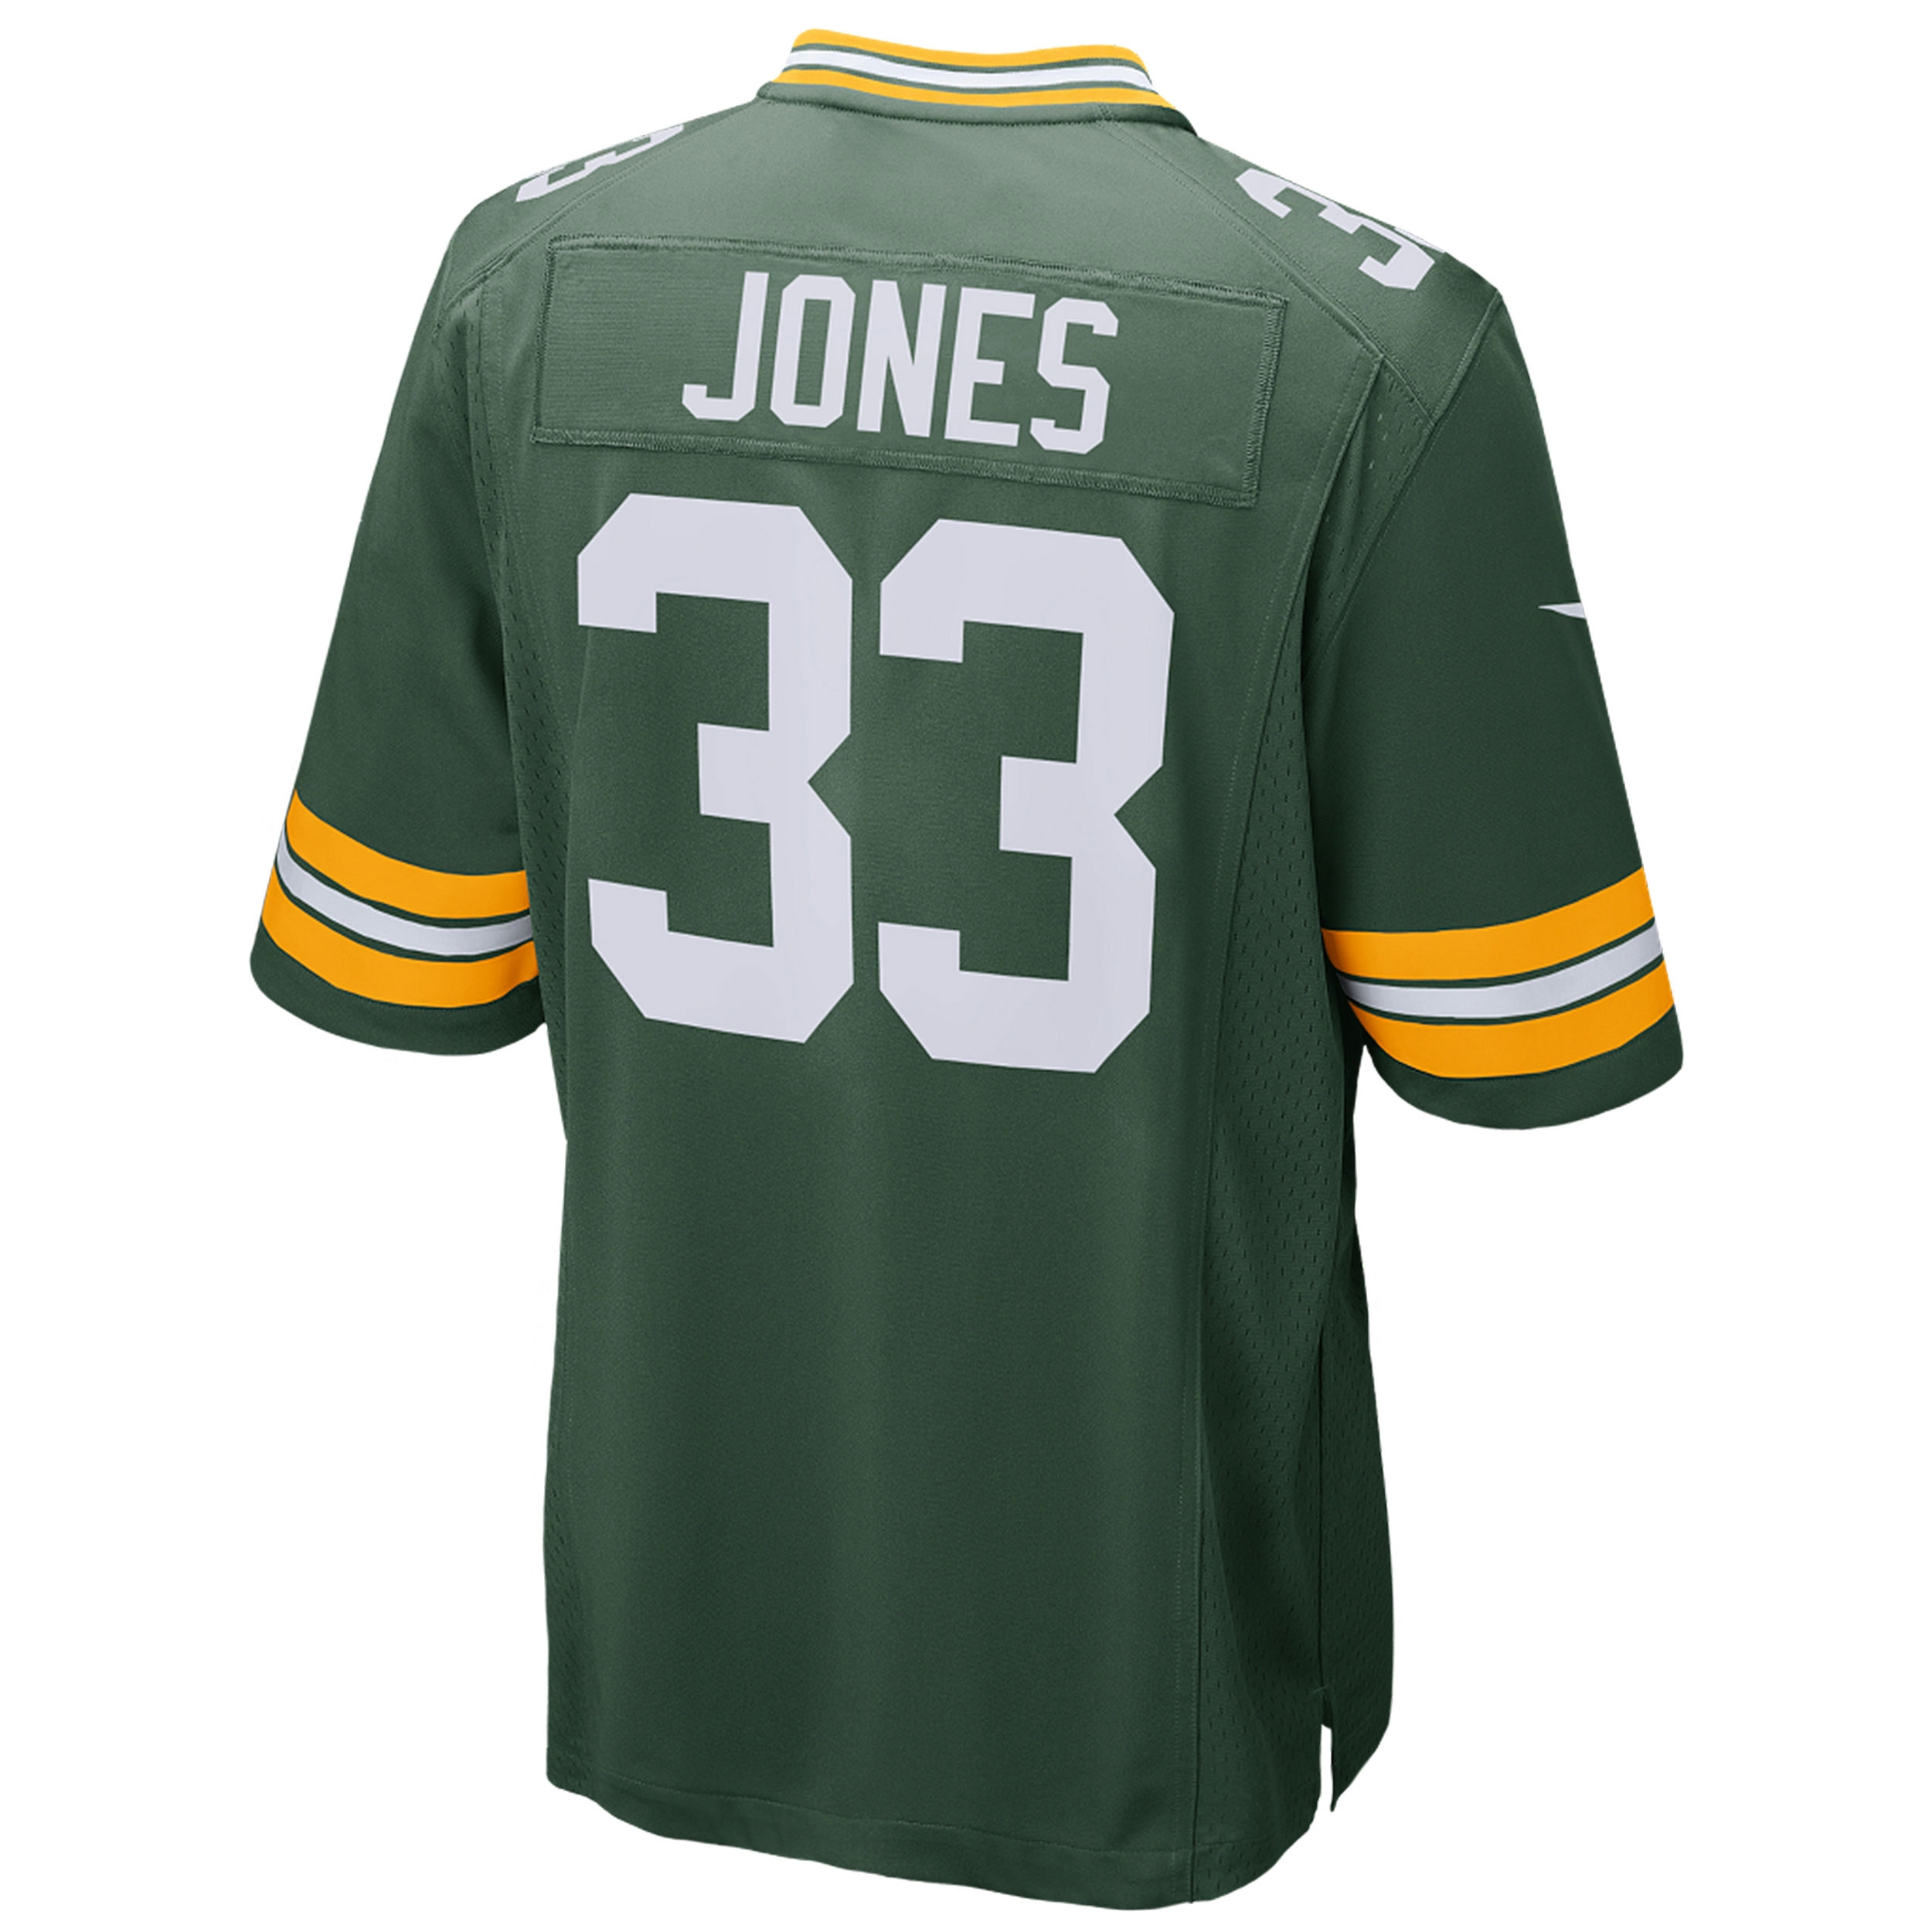 33 Aaron Jones Home Youth Game Jersey At The Packers Pro Shop